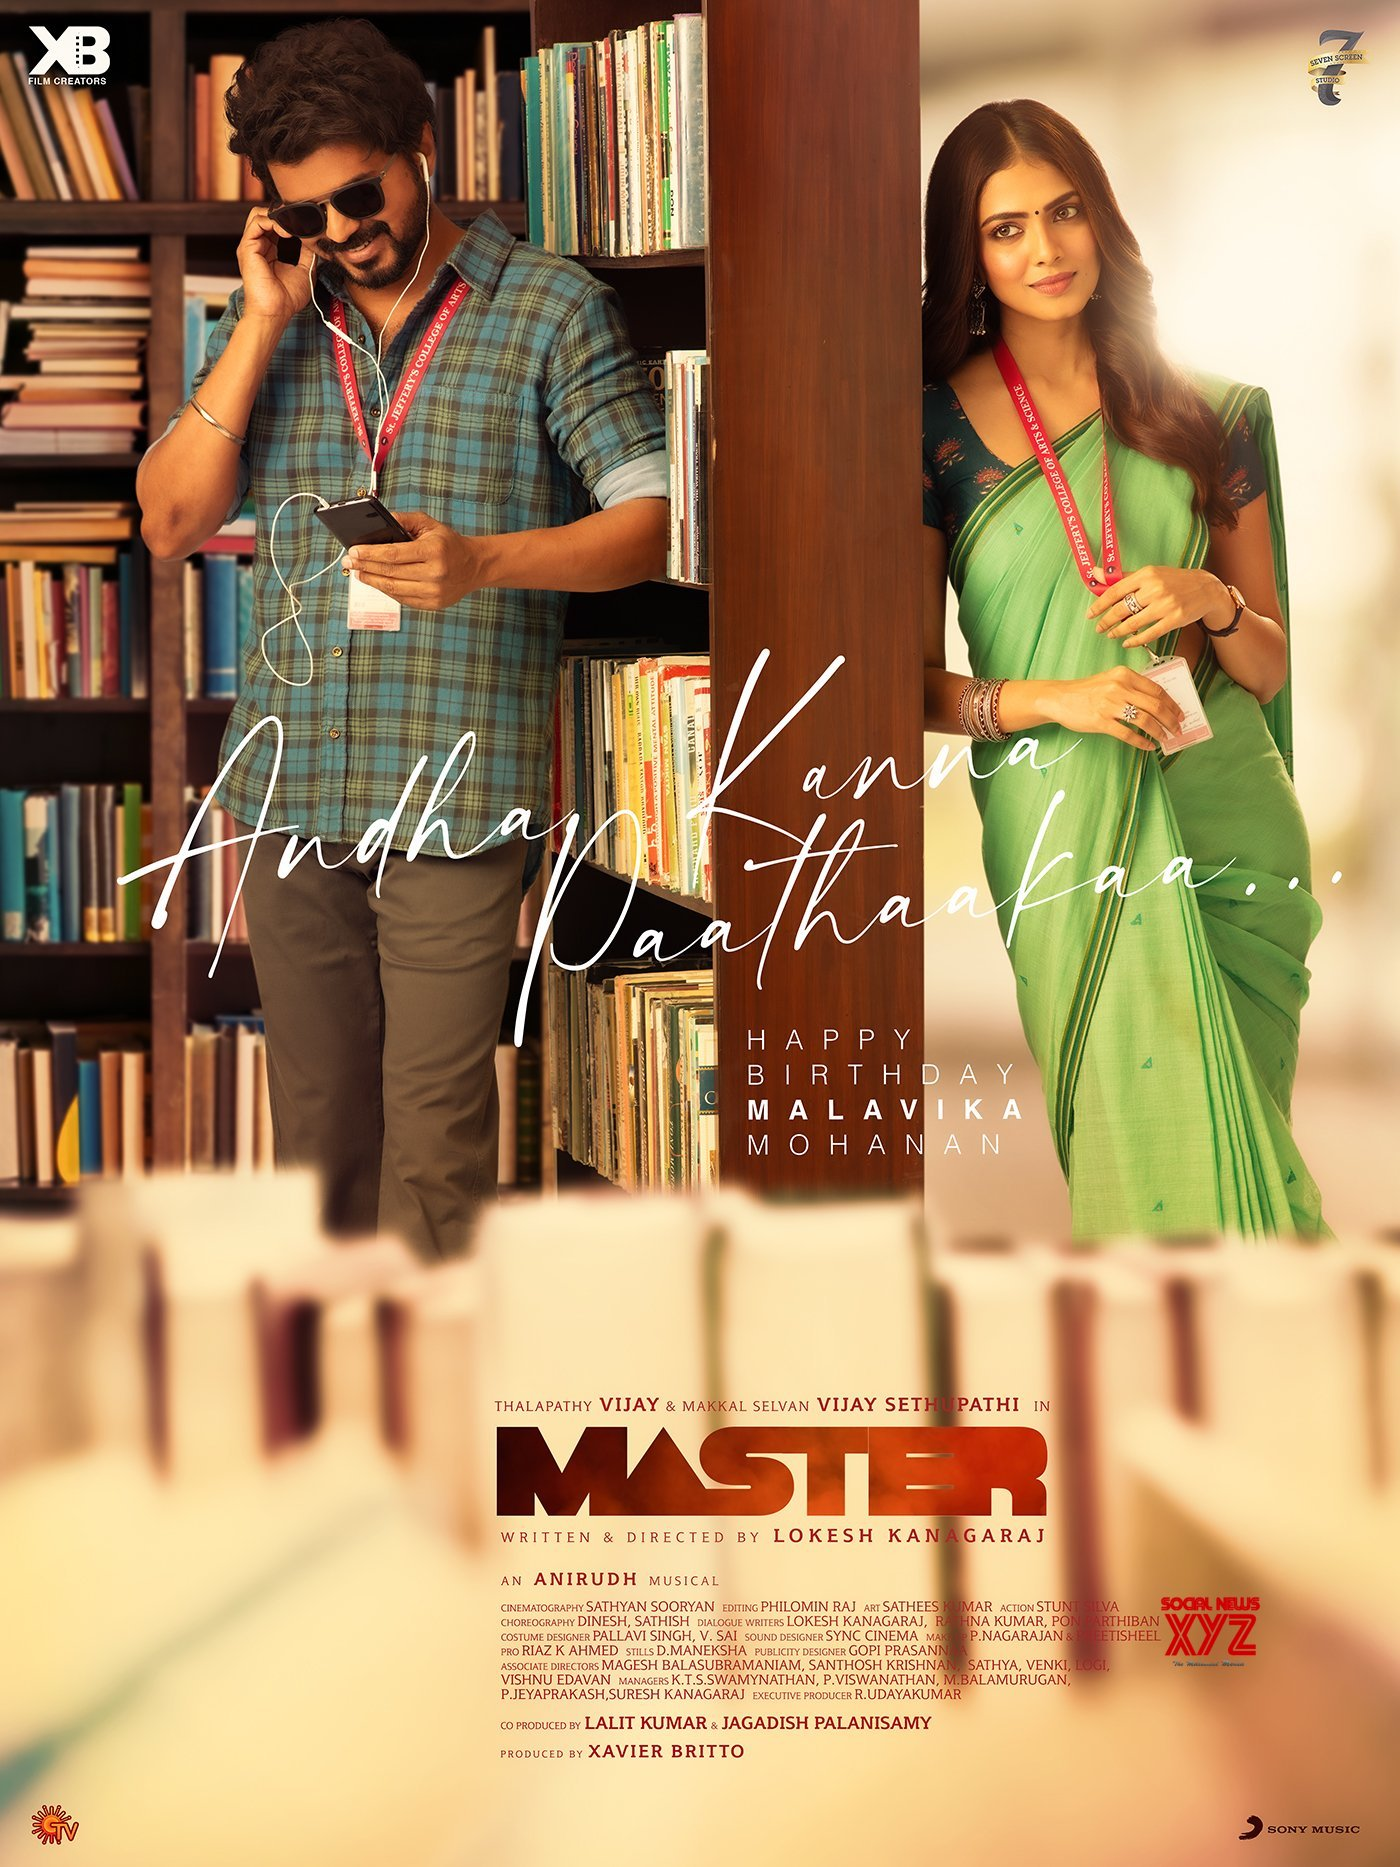 Actress Malavika Mohan Birthday Wishes Poster From Master Movie Team